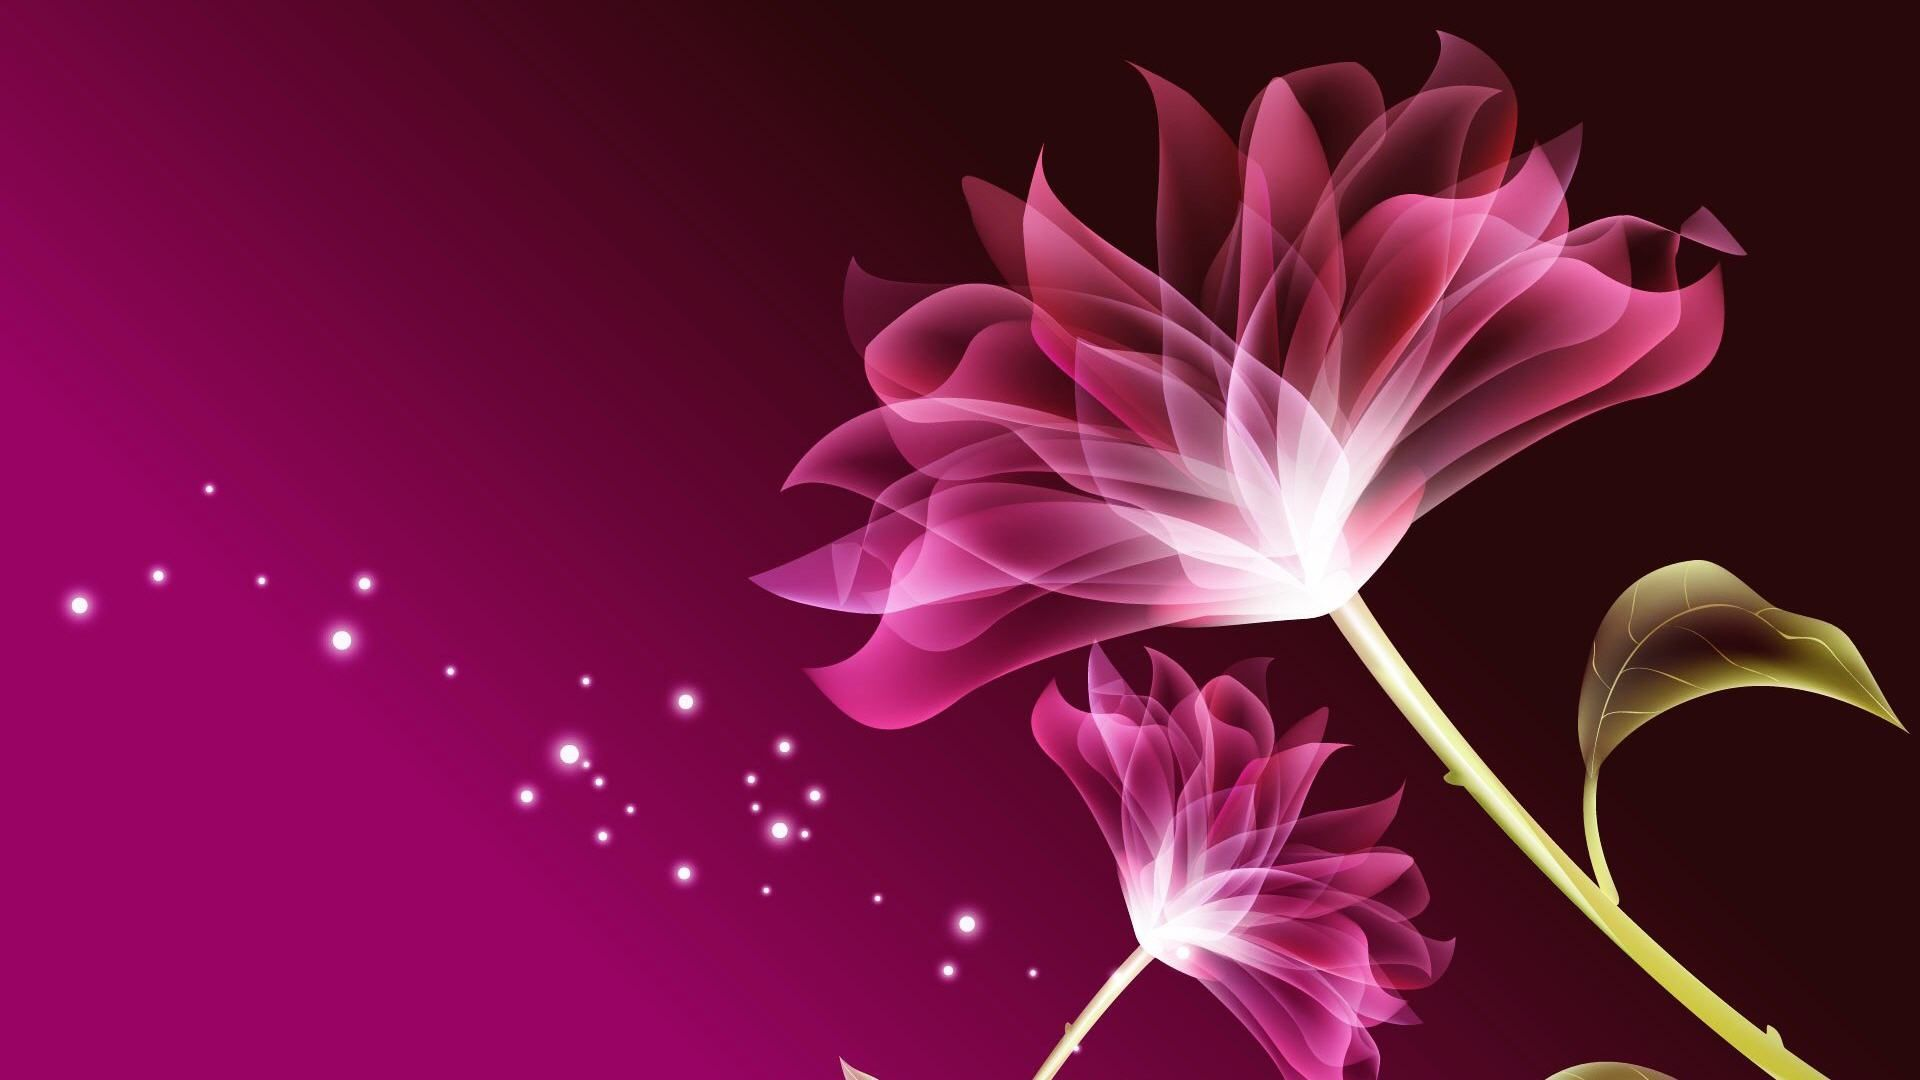 3d Pink Beautiful Flower Wallpaper Pretty Flowers In 2018